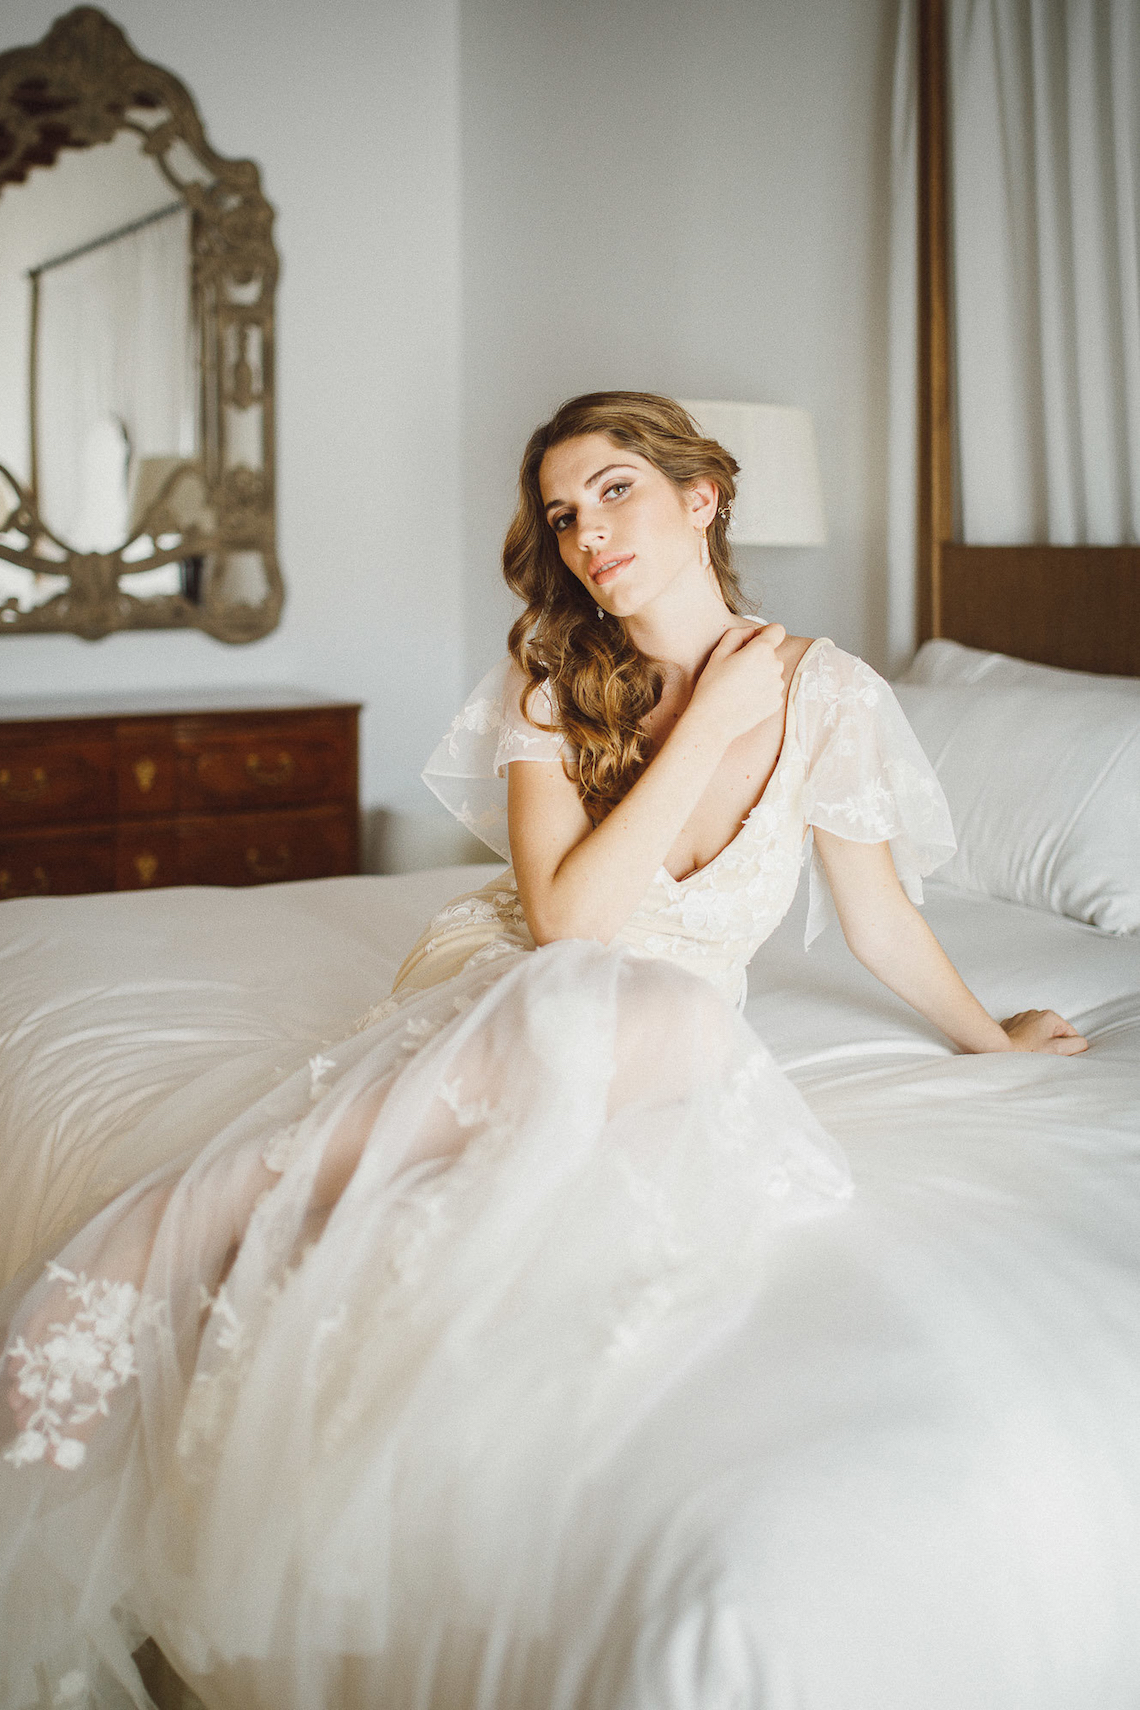 The Dreamiest Mallorca Mountain Bridal Inspiration – Vivid Symphony 25